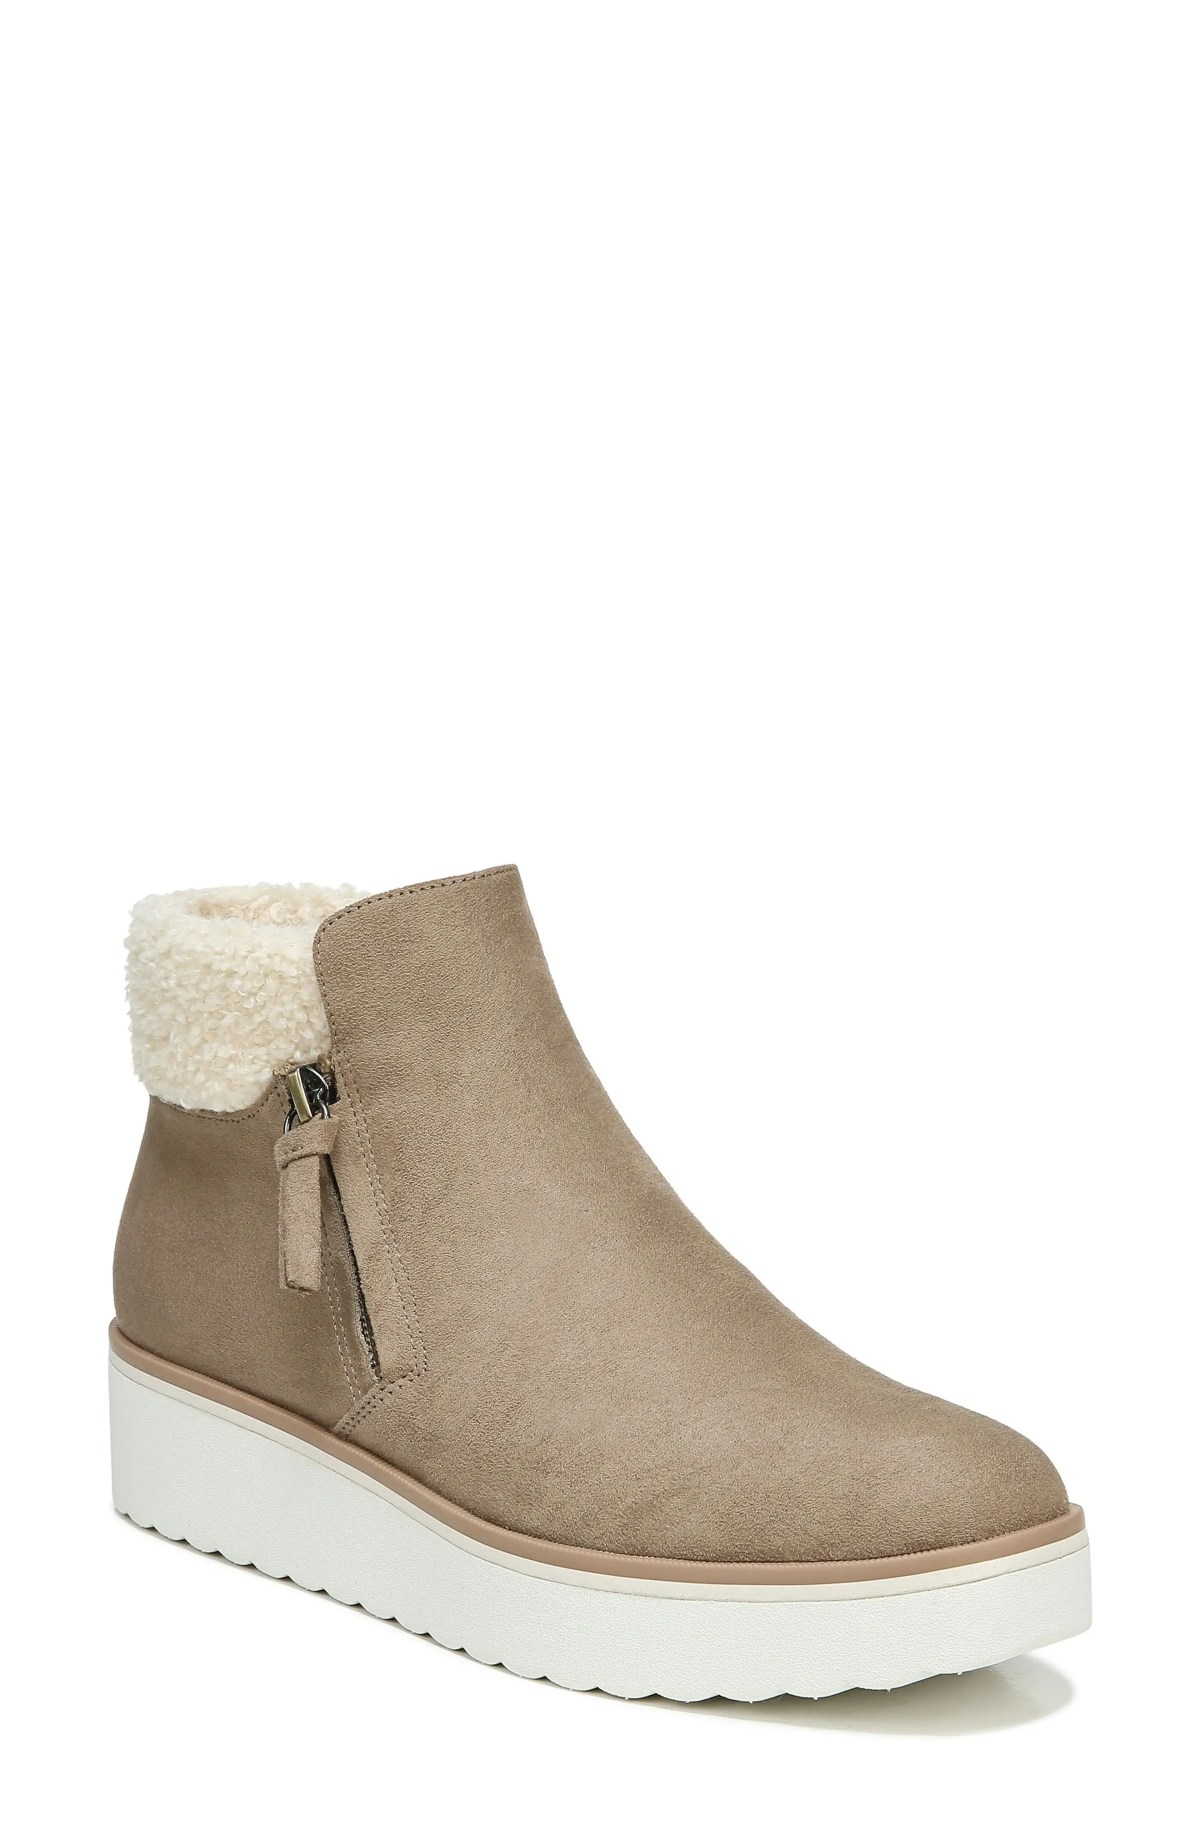 DR. SCHOLL'S Lunar Faux Shearling Bootie, Main, color, WOOD BROWN FABRIC